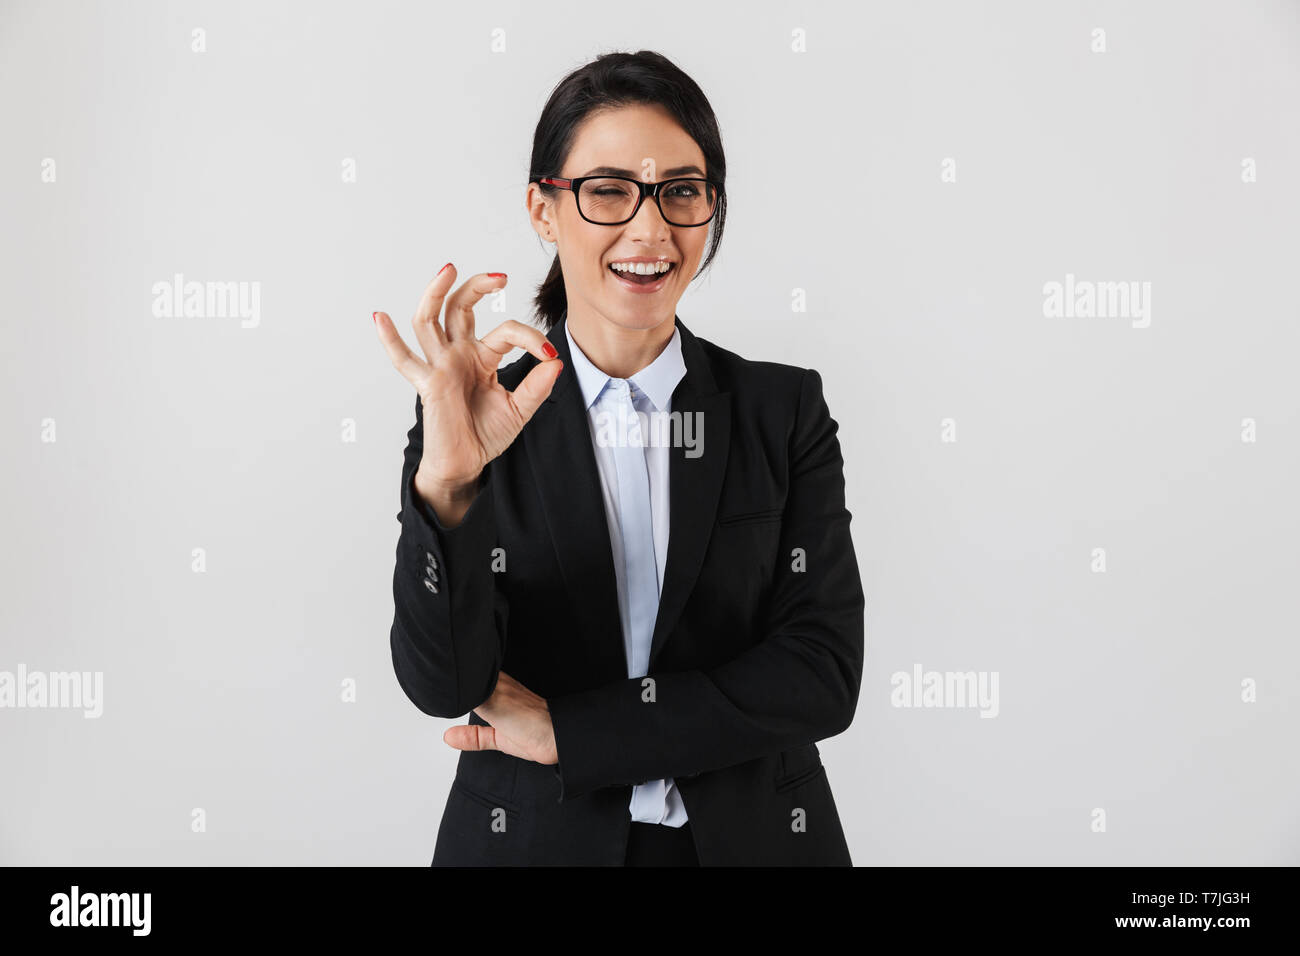 Portrait of adorable businesswoman 30s in formal wear and eyeglasses standing in the office isolated over white background - Stock Image